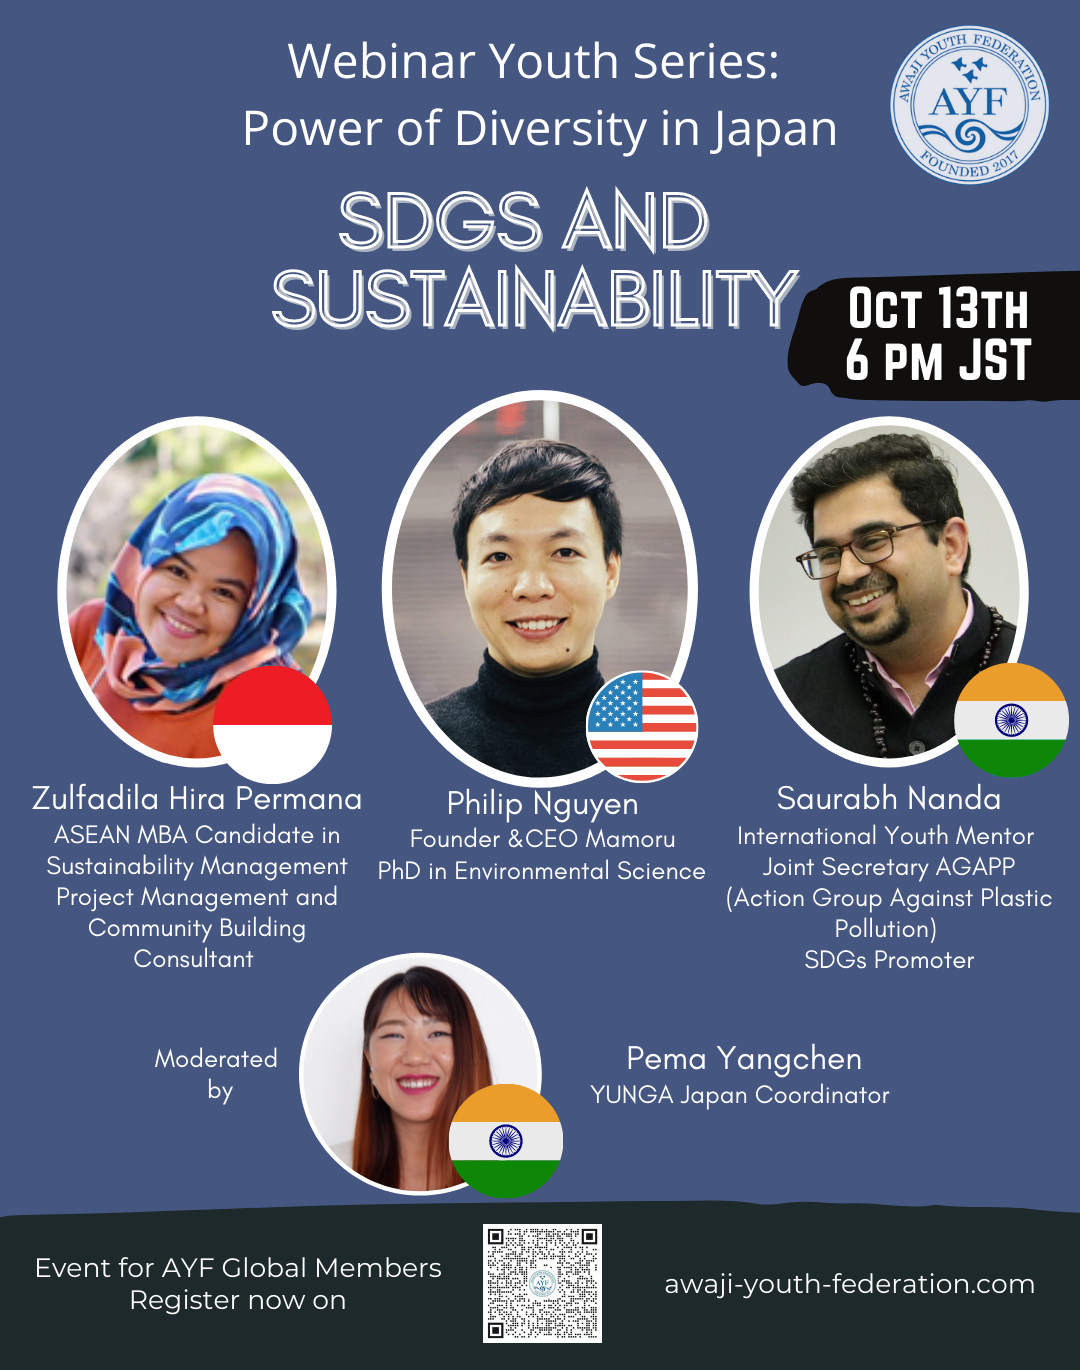 [Webinar Youth Series] SDGs and Sustainability